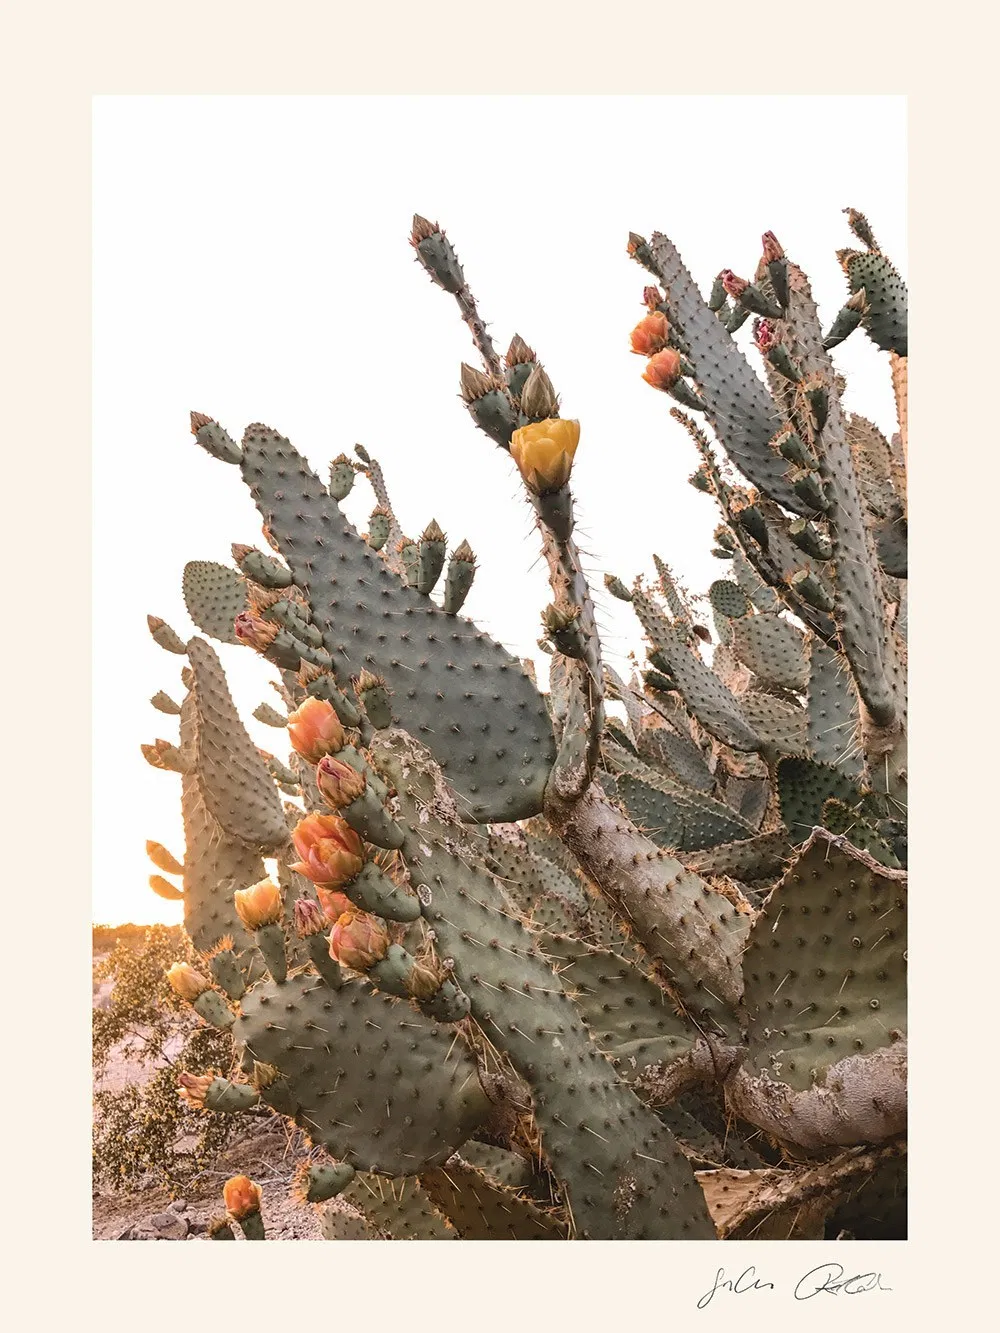 The Cow Tongue Cactus Is Aptly Named For Being The Shape Of A